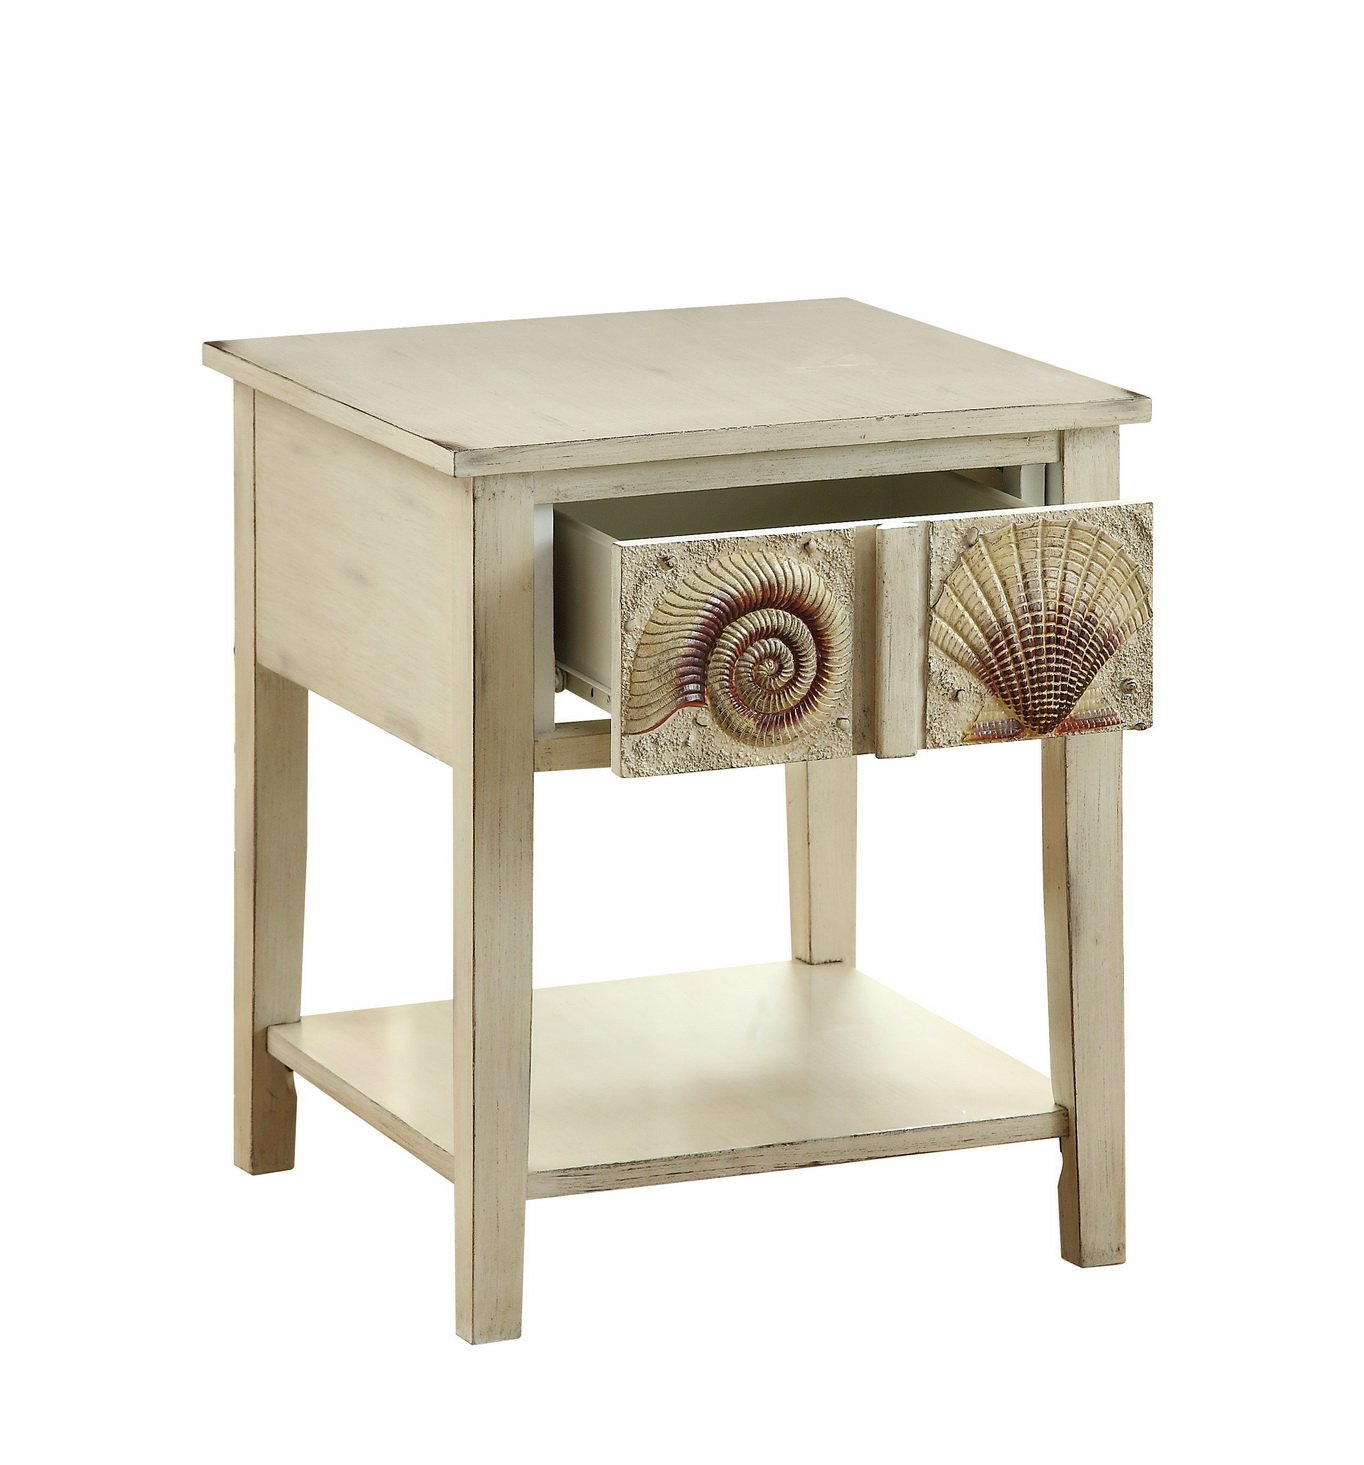 treasure trove accents surfside end table accent distressed sand kitchen dining wood and metal furniture small for patio blue white lamps black silver large with storage corner